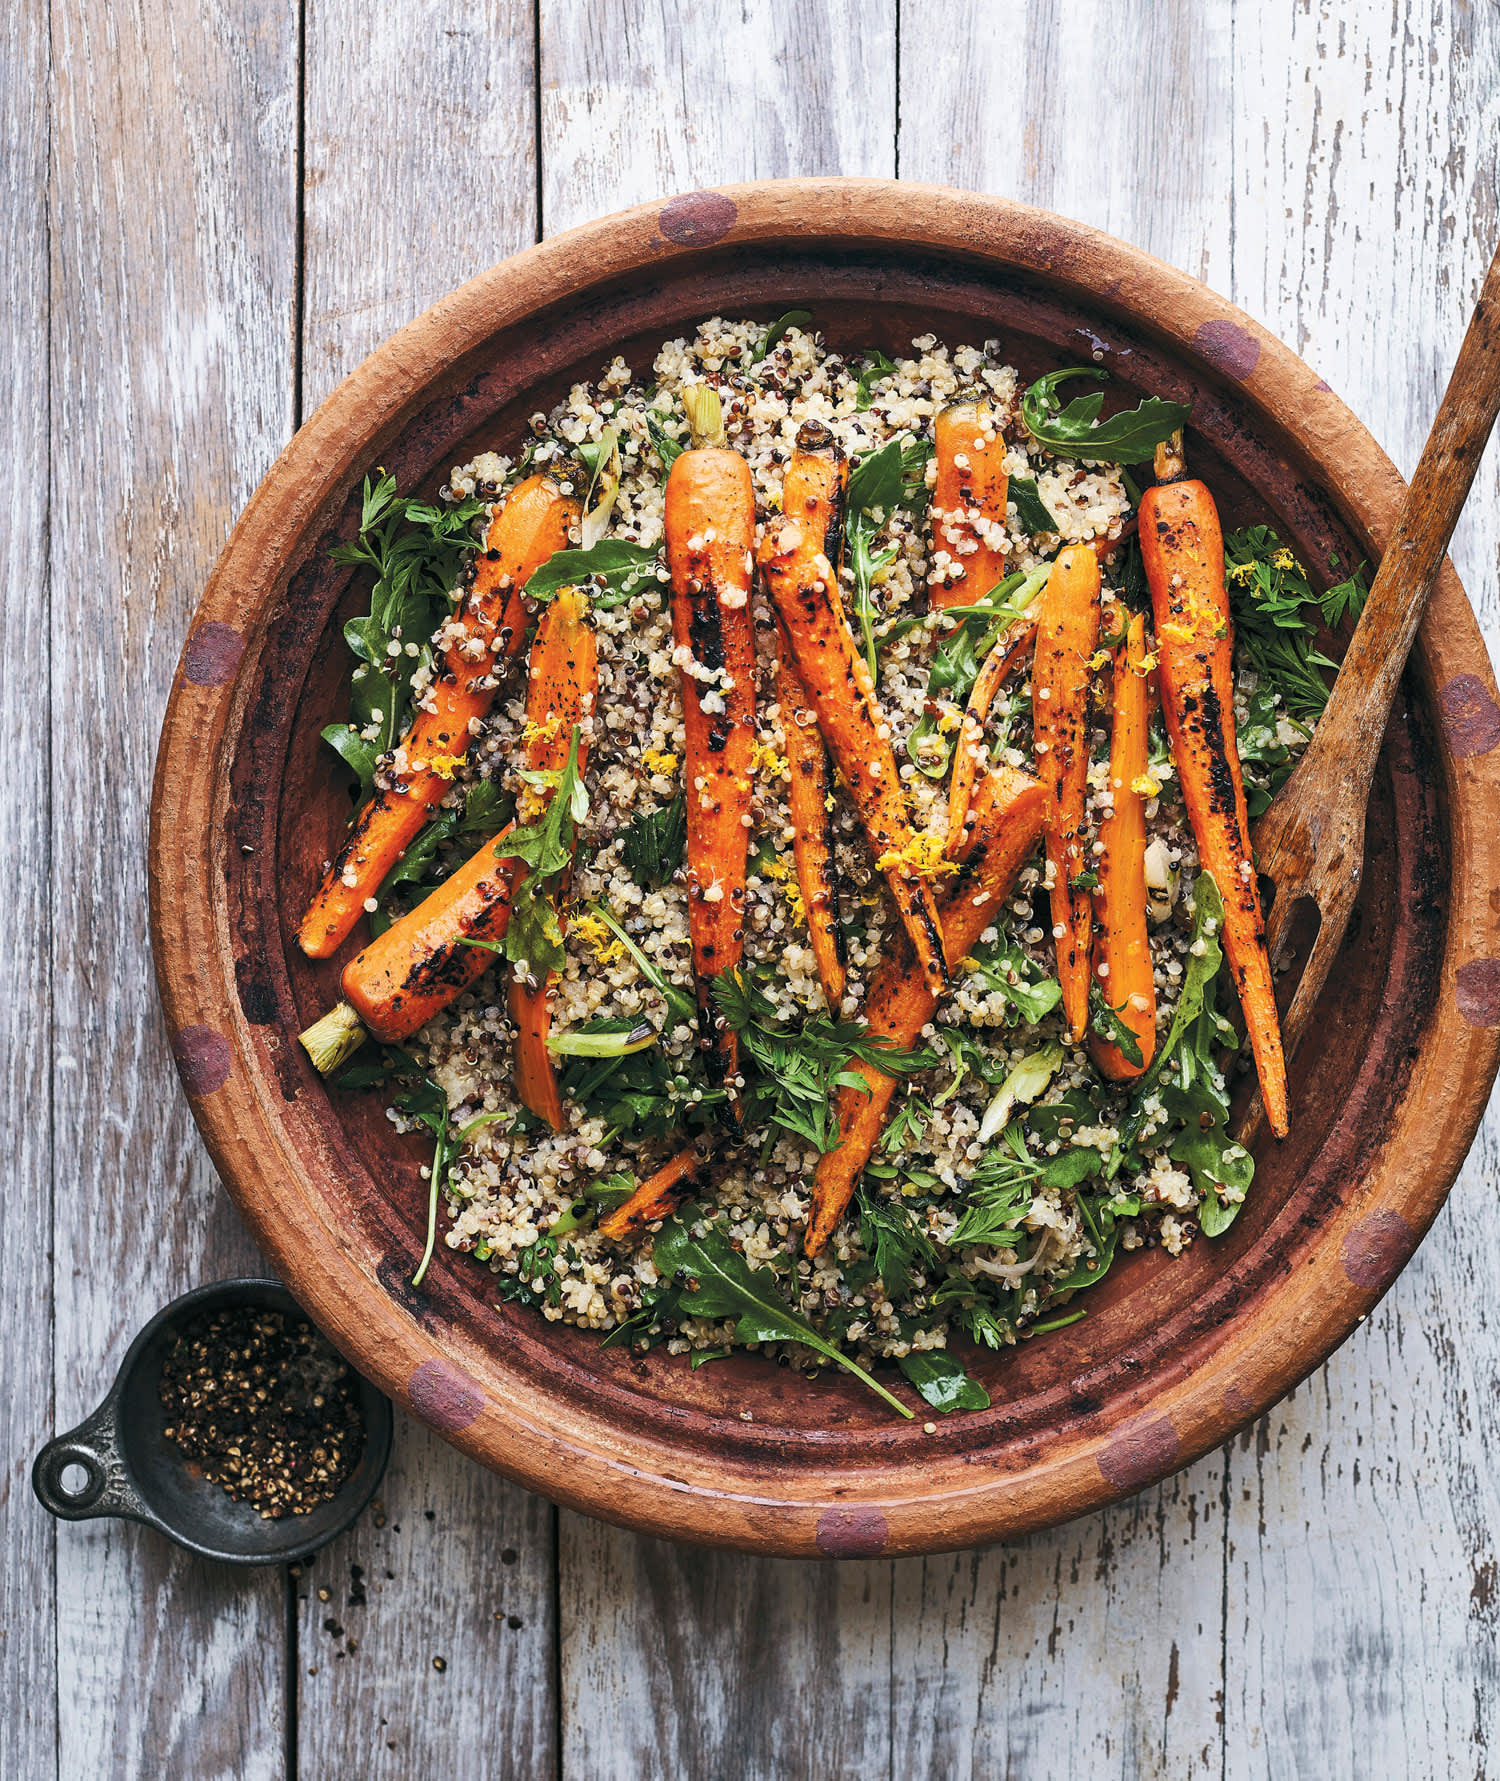 You're Going to Want to Make This Grilled Grain Salad Every Week